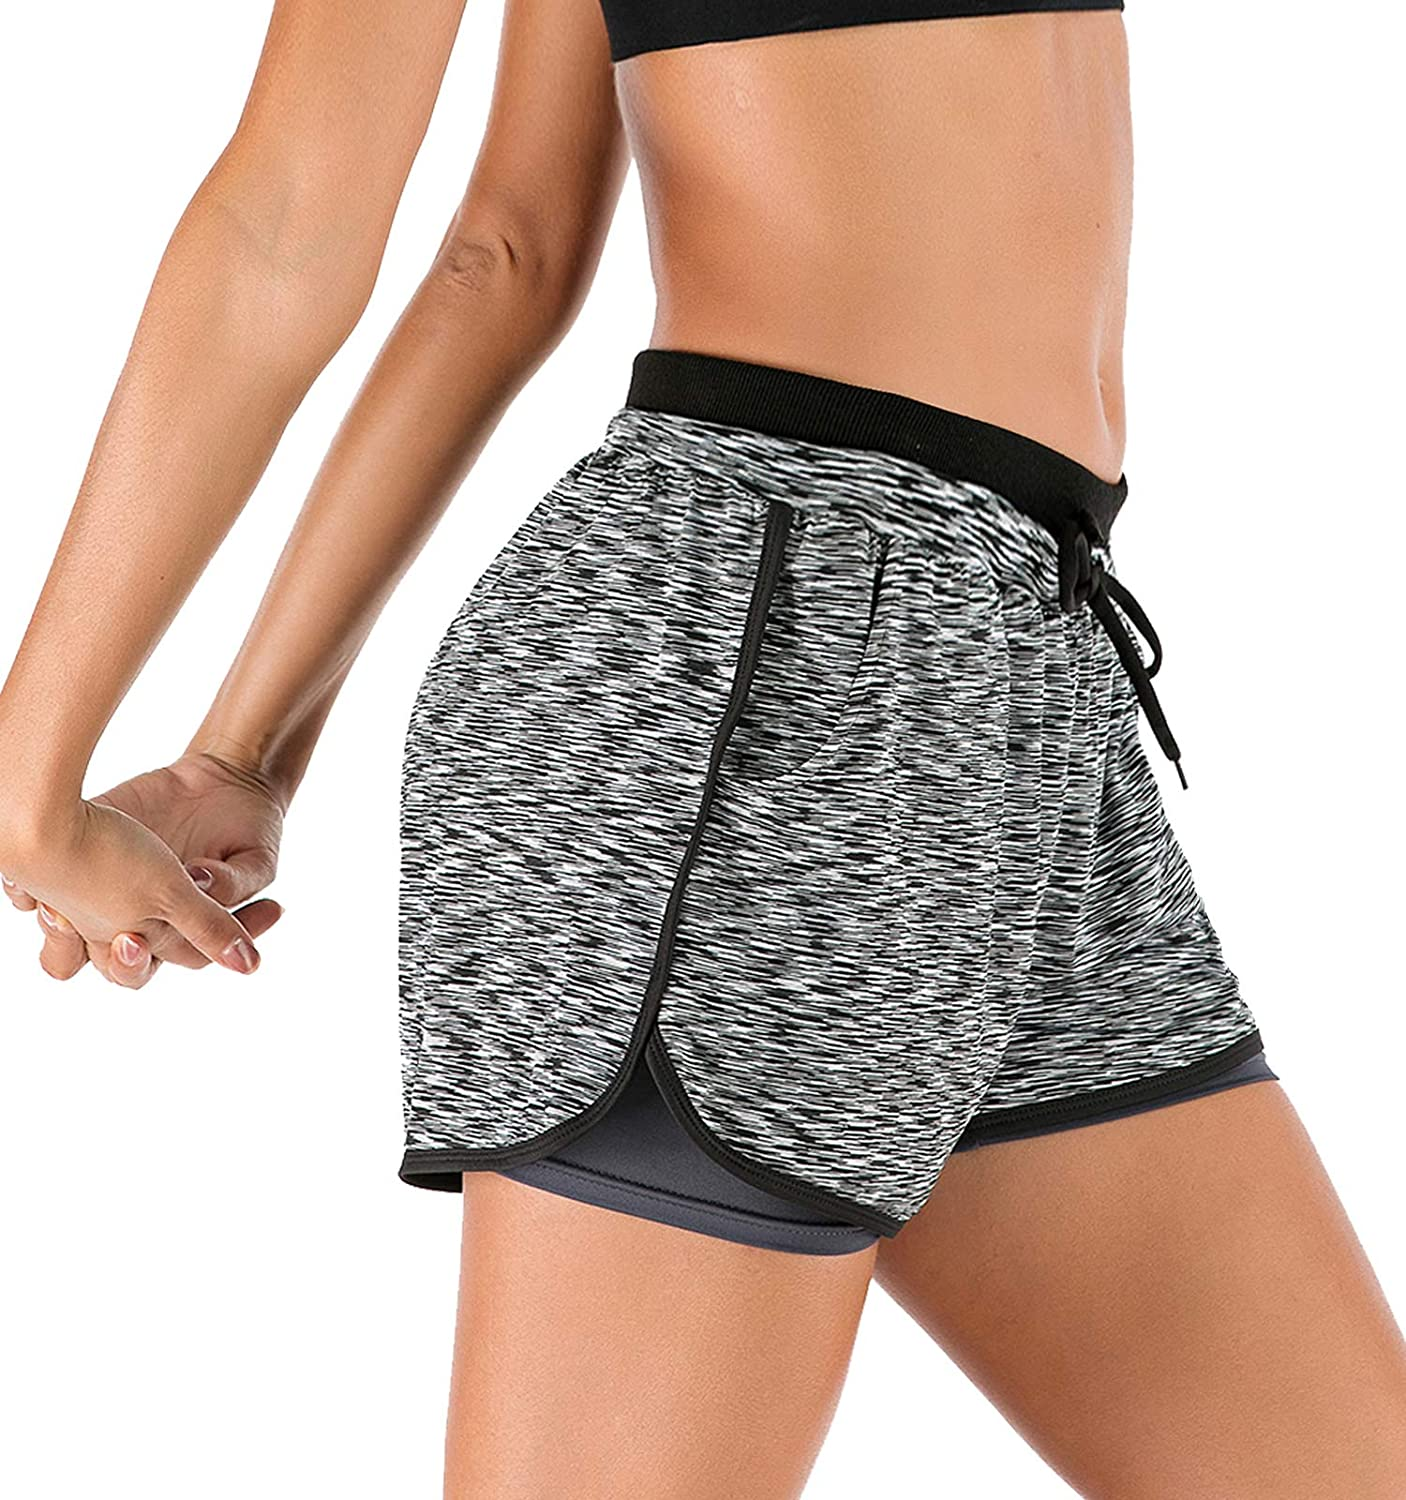 Youloveit Womens Double Layer Workout Running Shorts 2 in 1 Athletic Yoga Shorts with Pockets